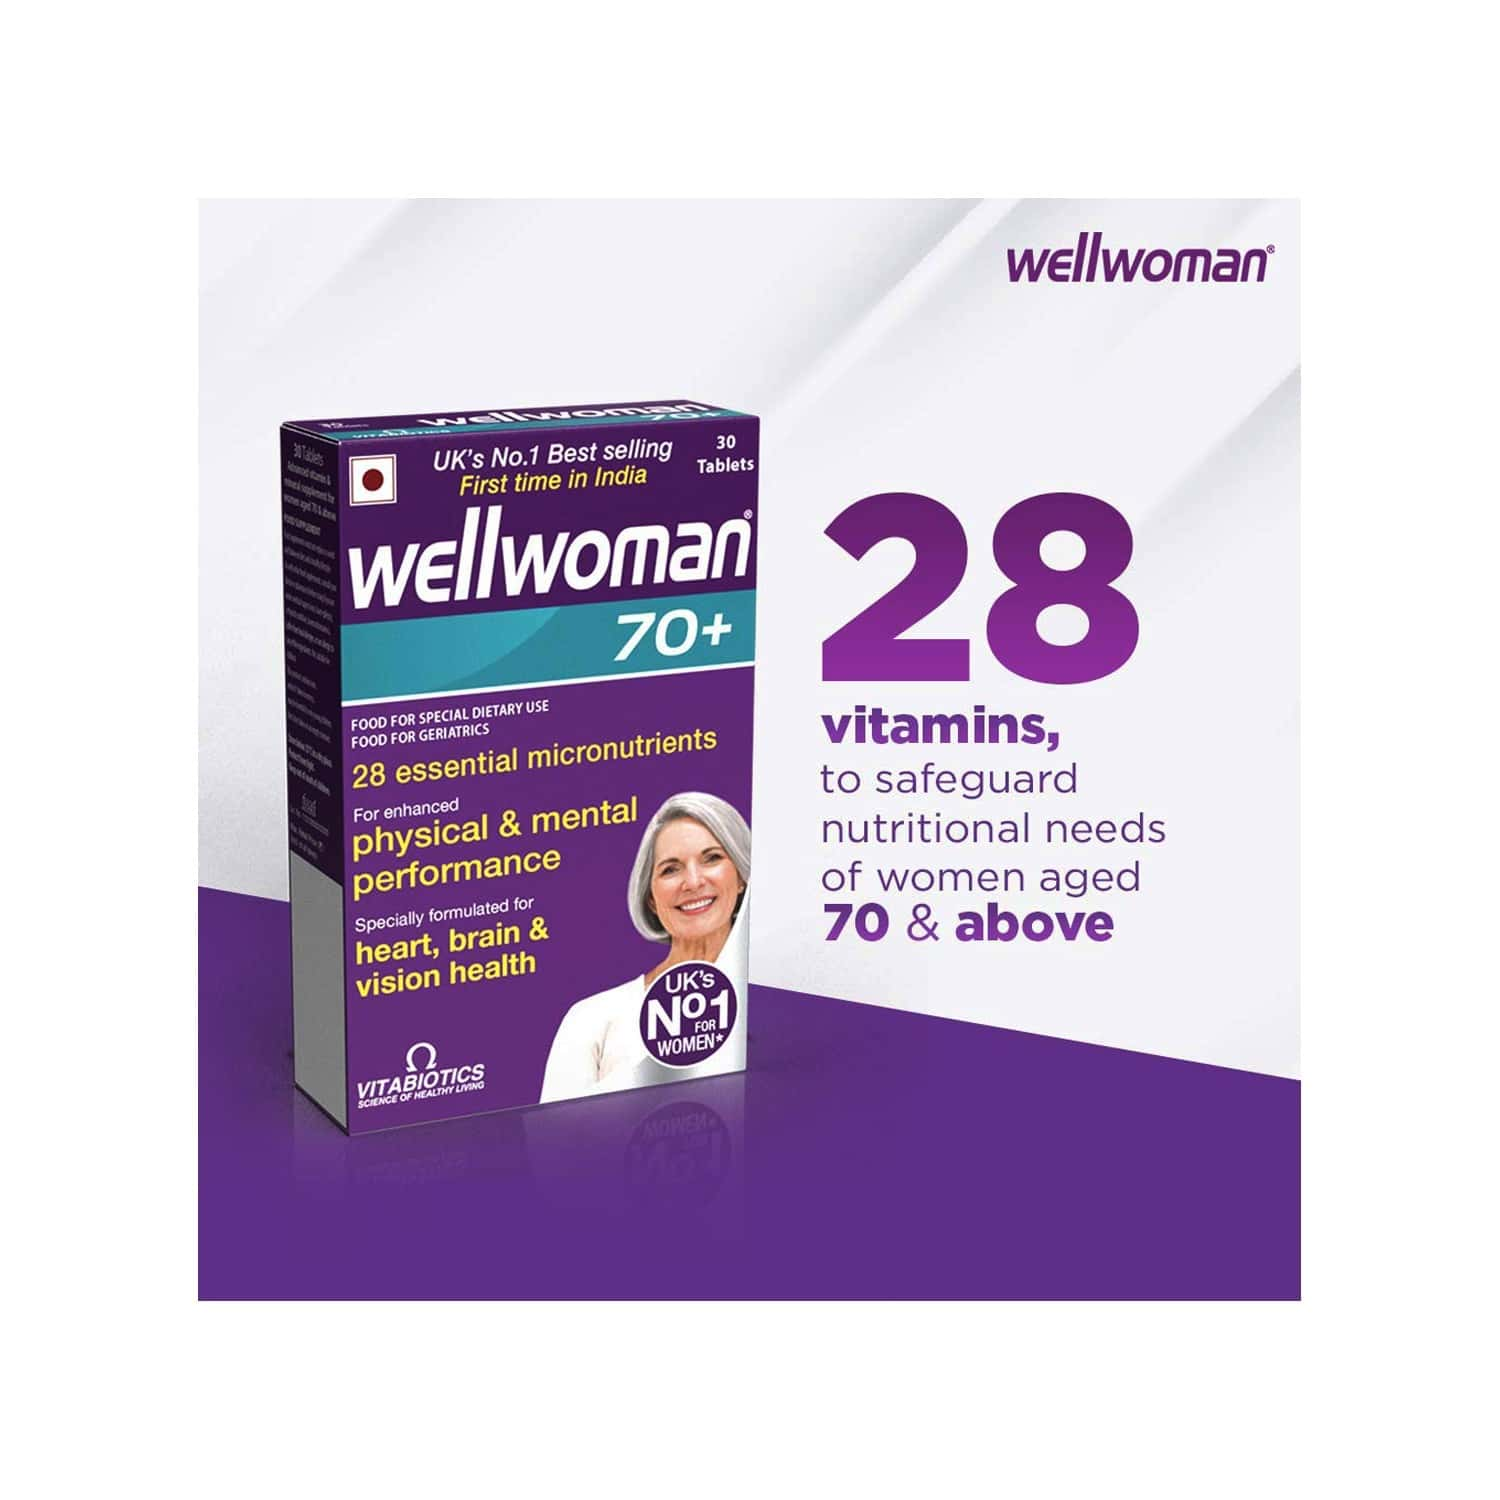 Wellwoman 70+ - Health Supplements (28 Vitamins And Nutrients) With Wellman 30 Tablet Free